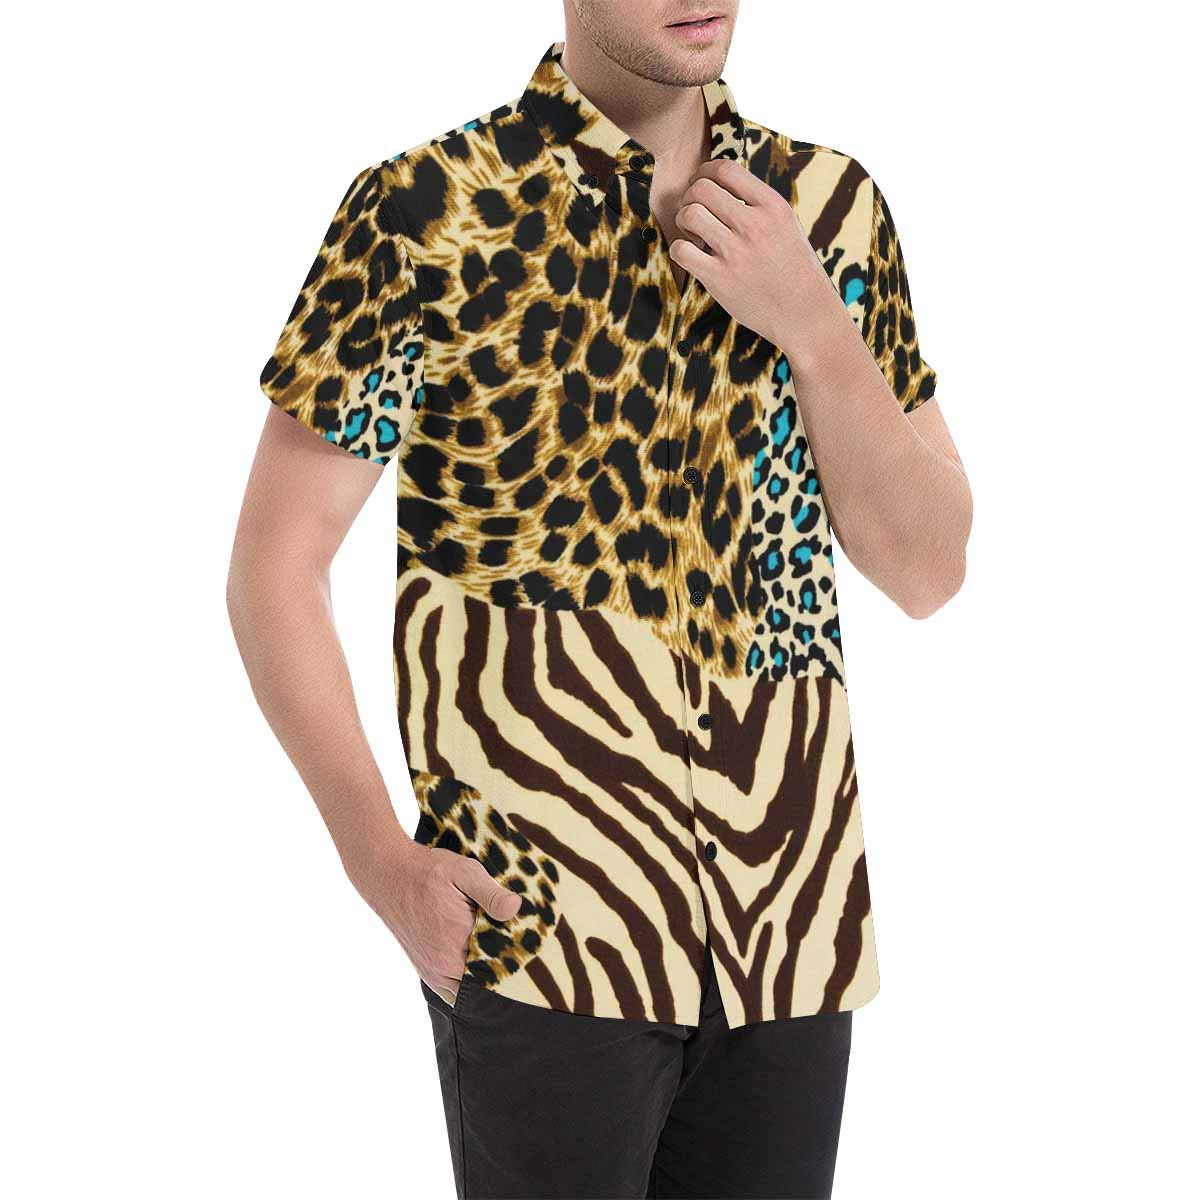 InterestPrint Mens Botton Up Tiger and Leopard Skin Short Sleeve Shirts S-5XL